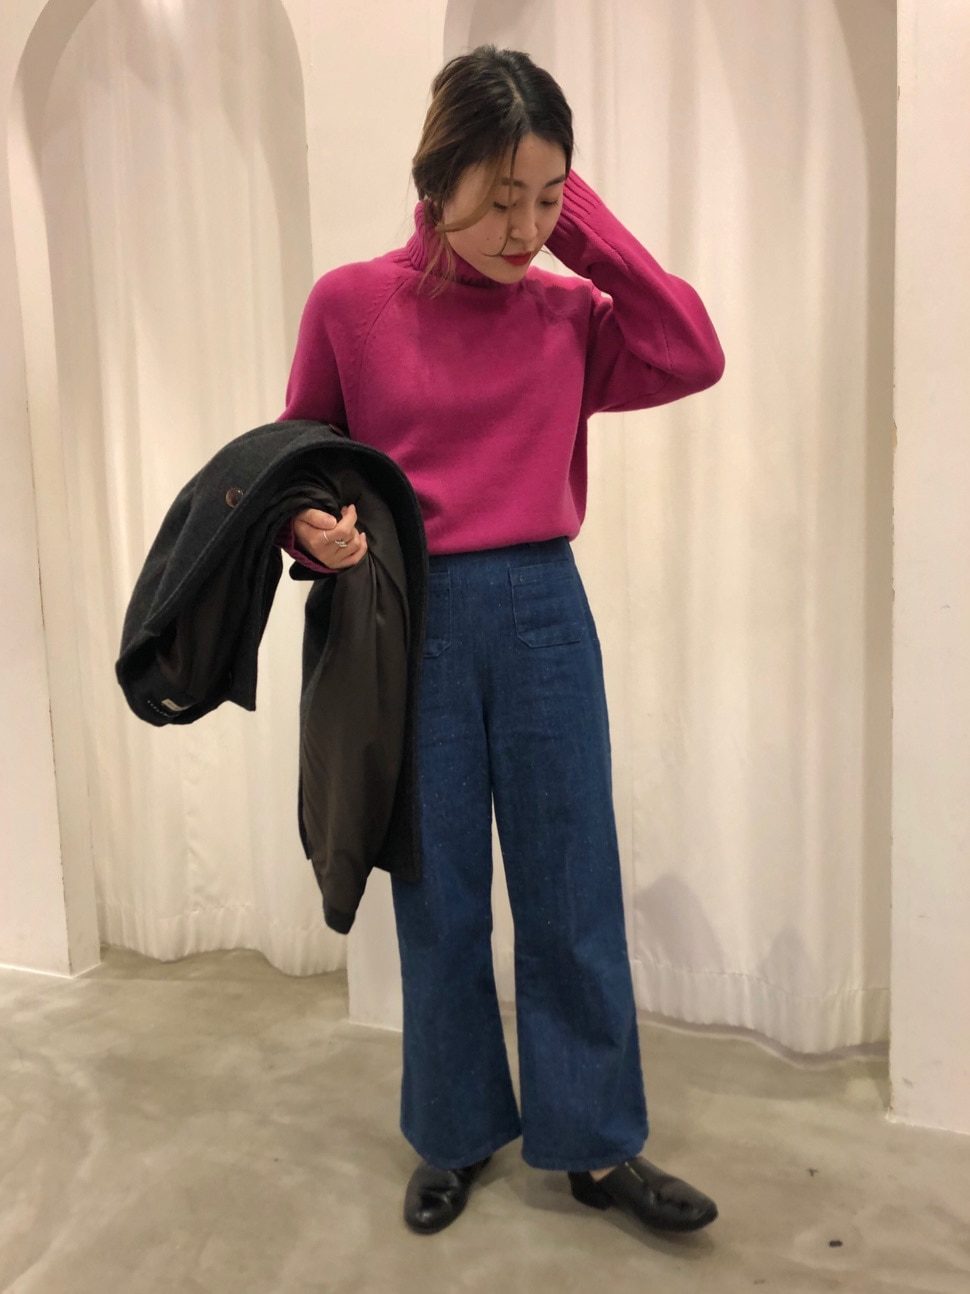 Dot and Stripes CHILD WOMAN ラフォーレ原宿 身長:153cm 2020.11.02